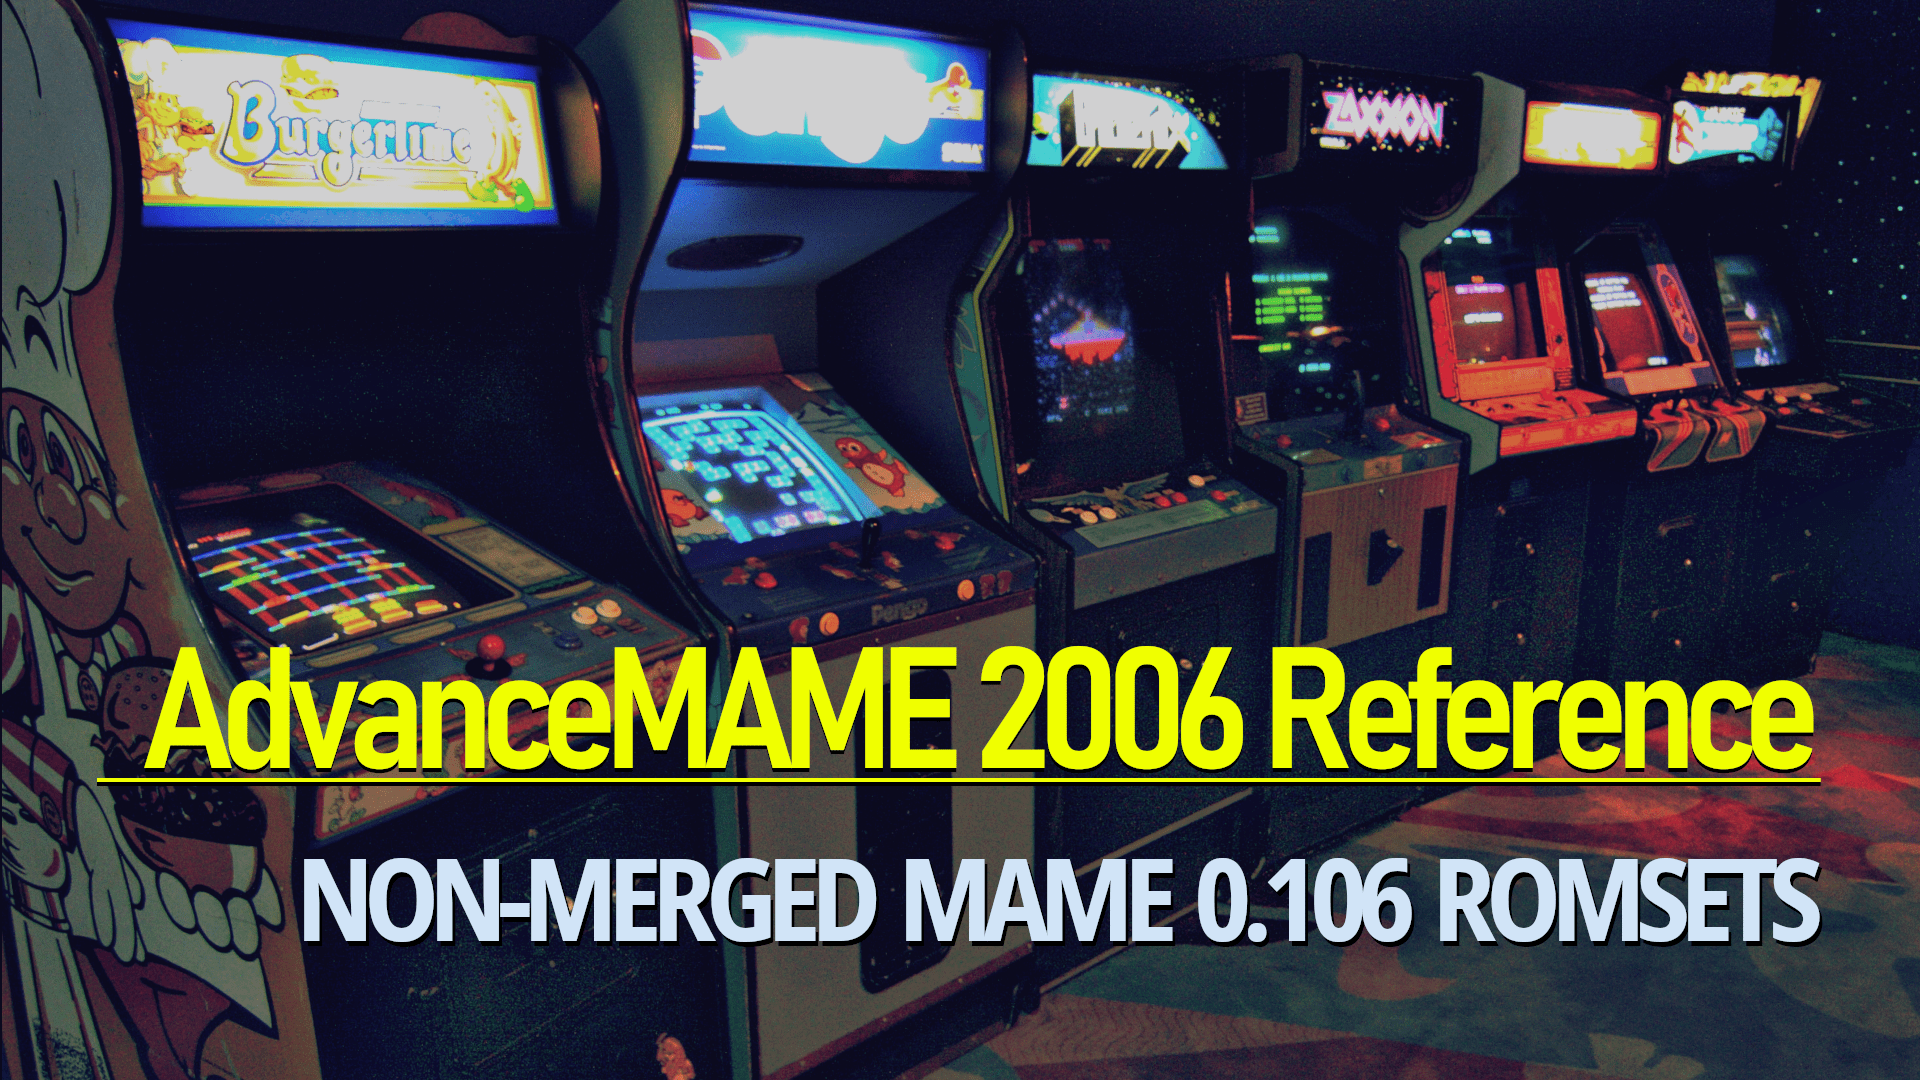 AdvanceMAME 2006 Reference: Non-Merged MAME 0 106 Romsets